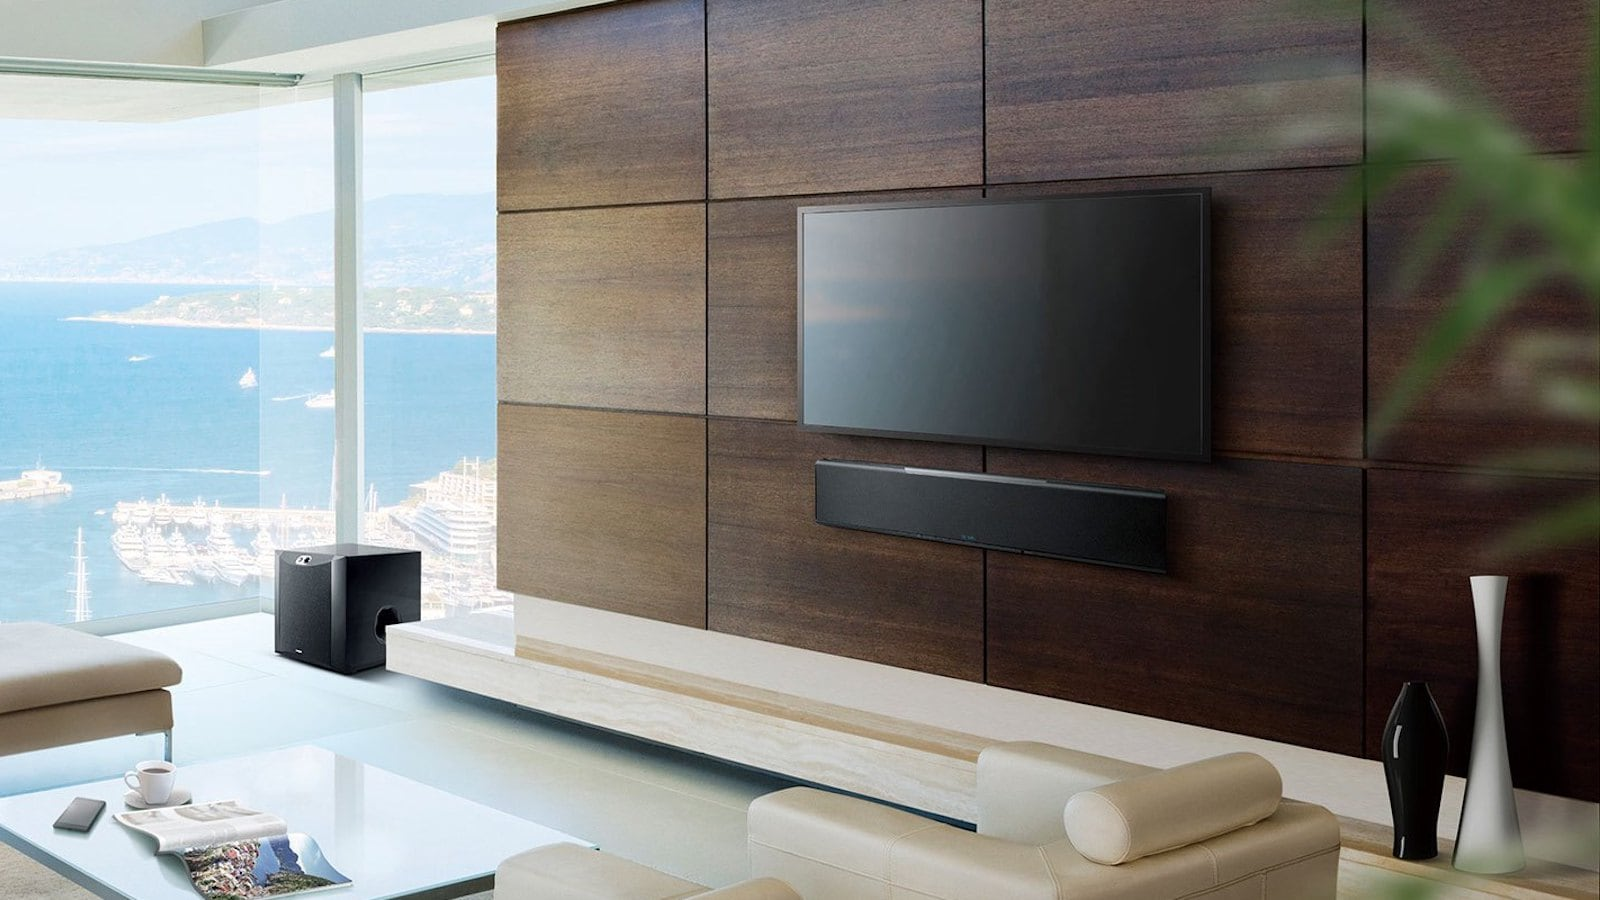 Yamaha YSP-5600 Digital Sound Projector has 46 speakers that work with Dolby Atmos